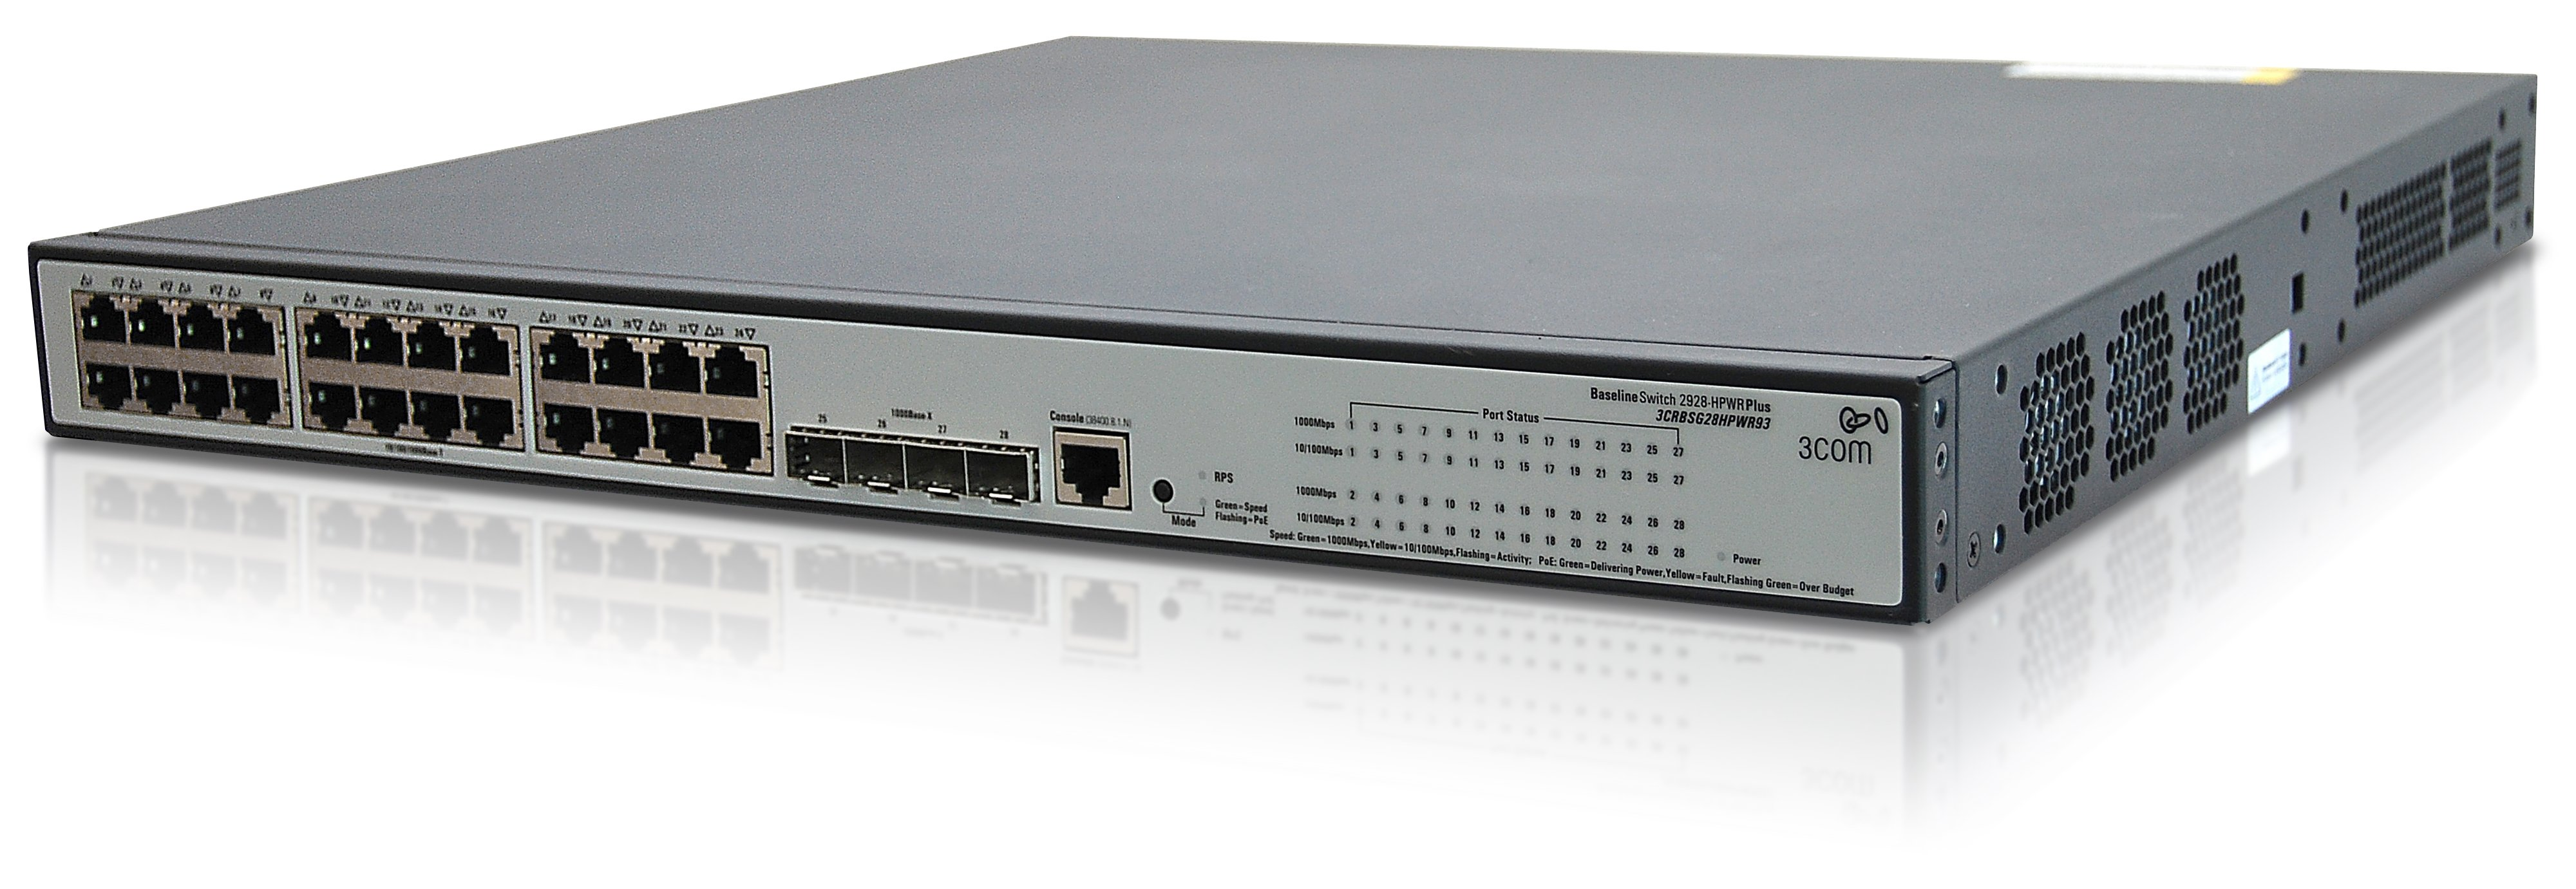 HPE 1910-24G-PoE Managed Switch - 24 x PoE Ports 20 x RJ45 4 x Exp